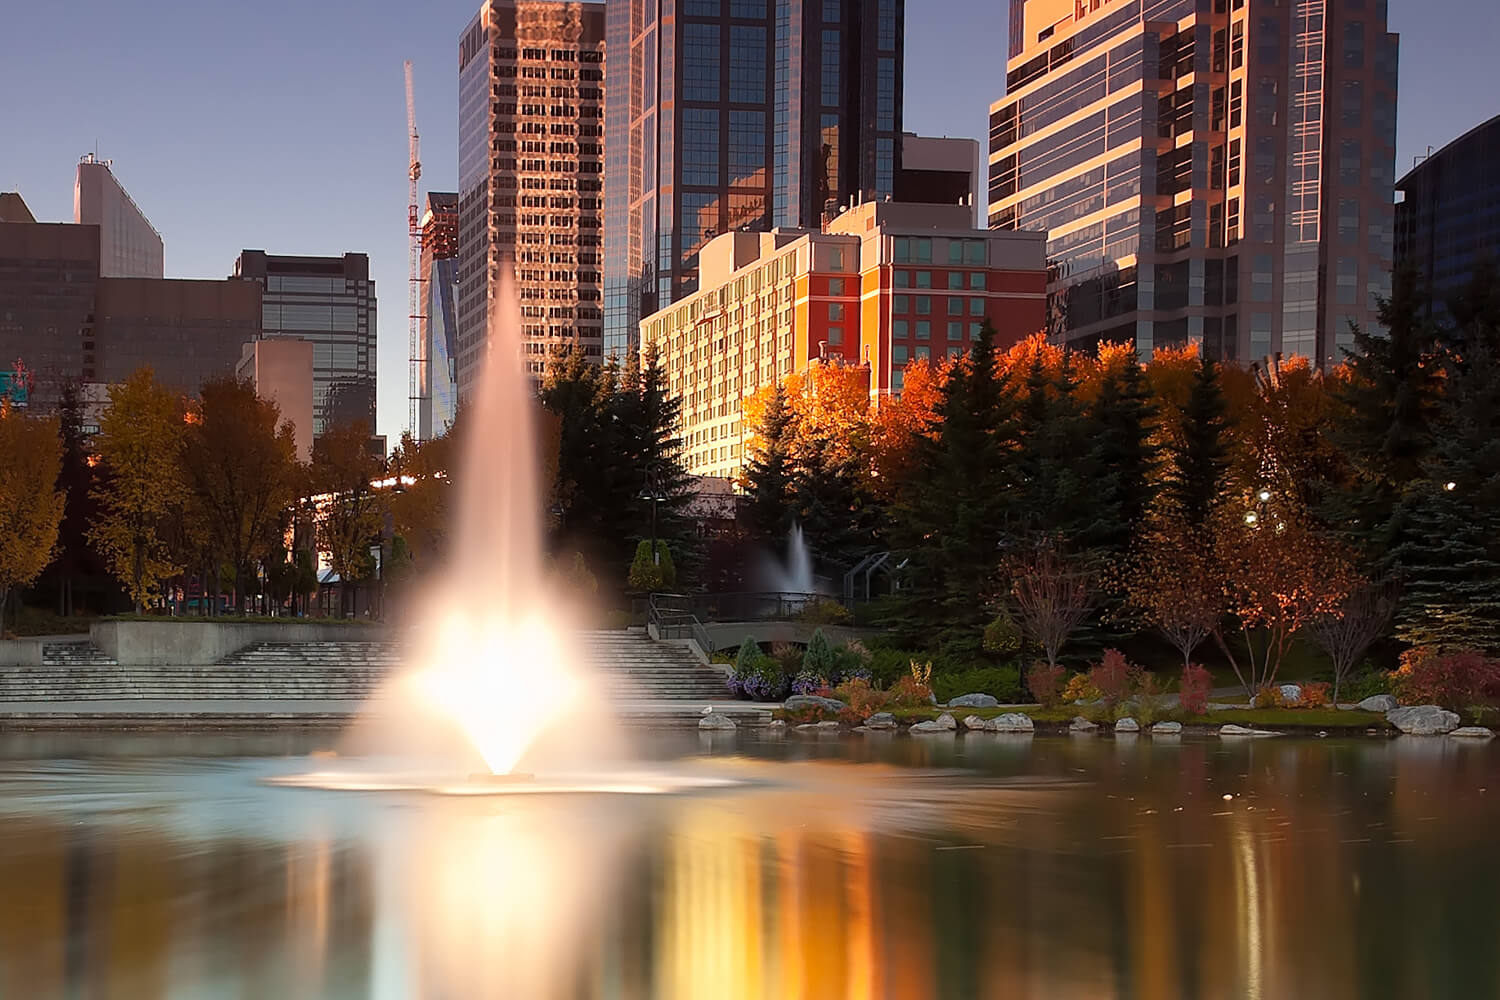 One of Otterbine's Tristar Aerating Fountains in a downtown area